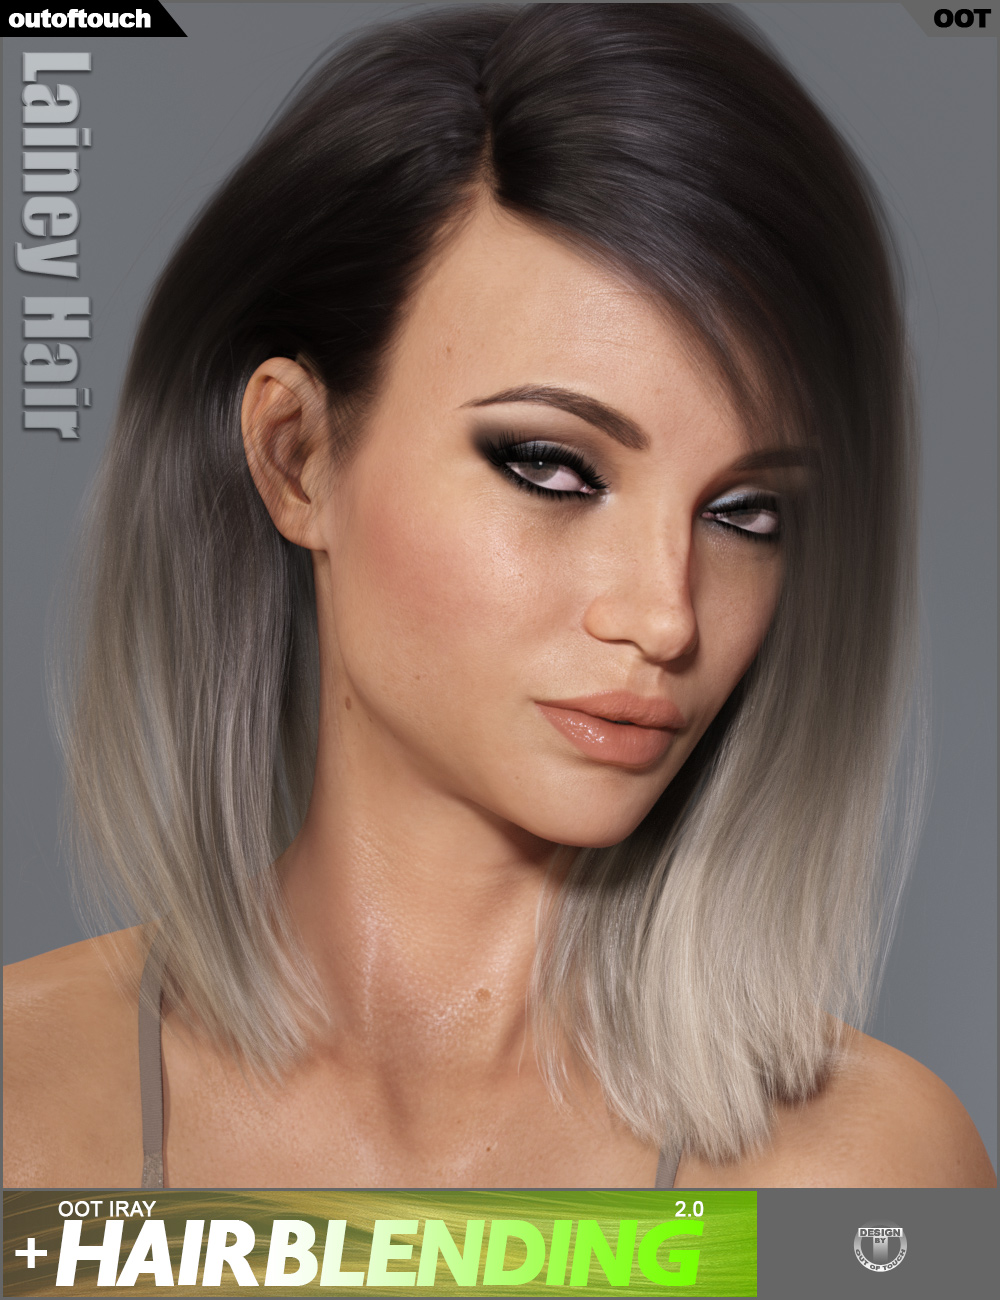 Lainey Hair for Genesis 3 Female(s) and Genesis 8 Female(s) by: outoftouch, 3D Models by Daz 3D